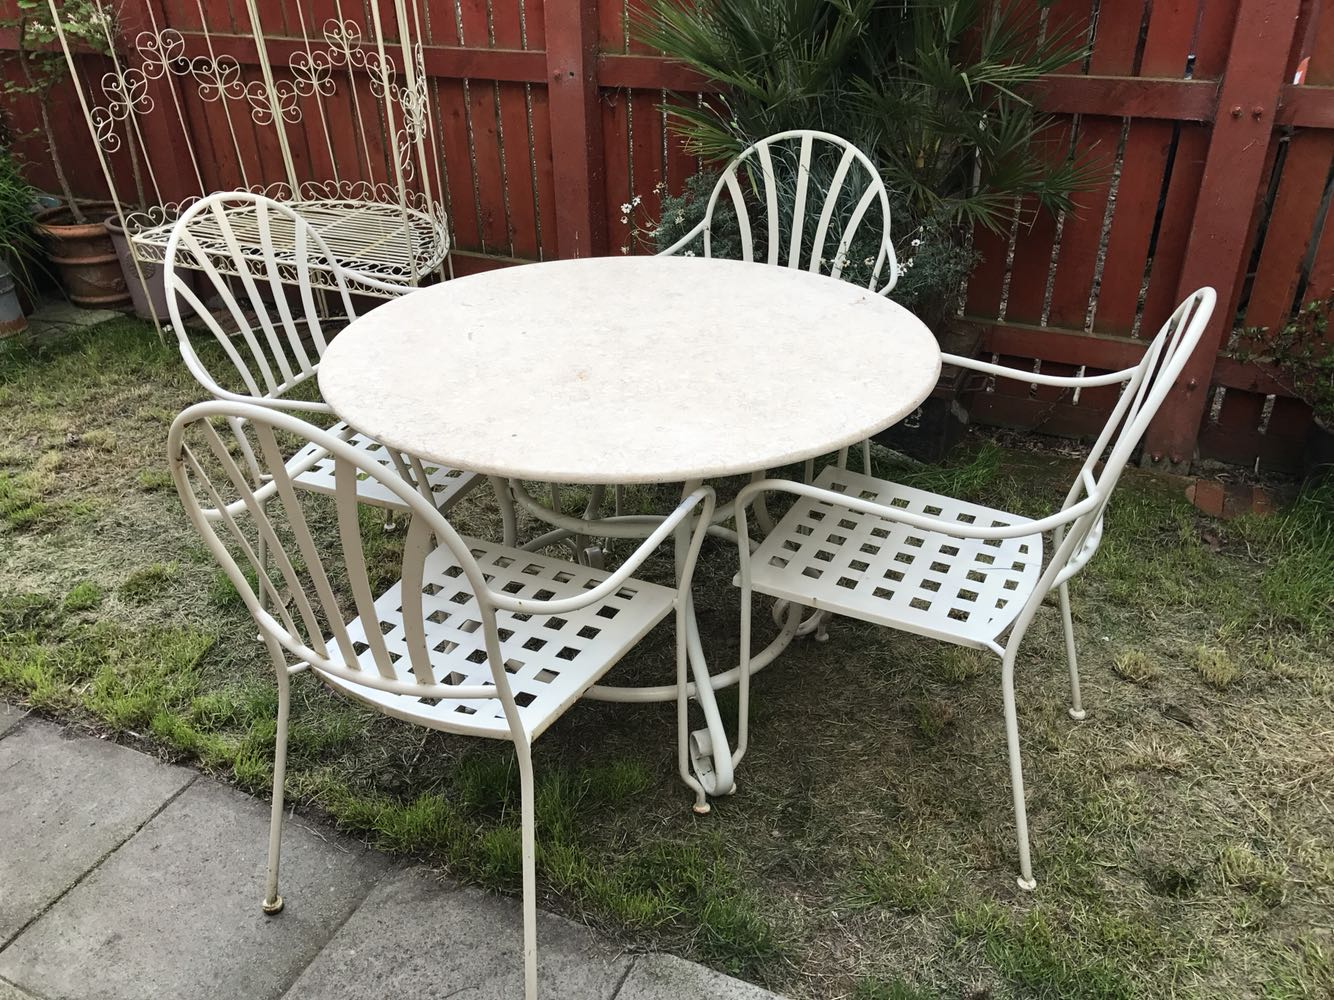 garden furniture kings lynn choosing a good garden furniture kings lynn will be a great asset for spending quality time with whole family member